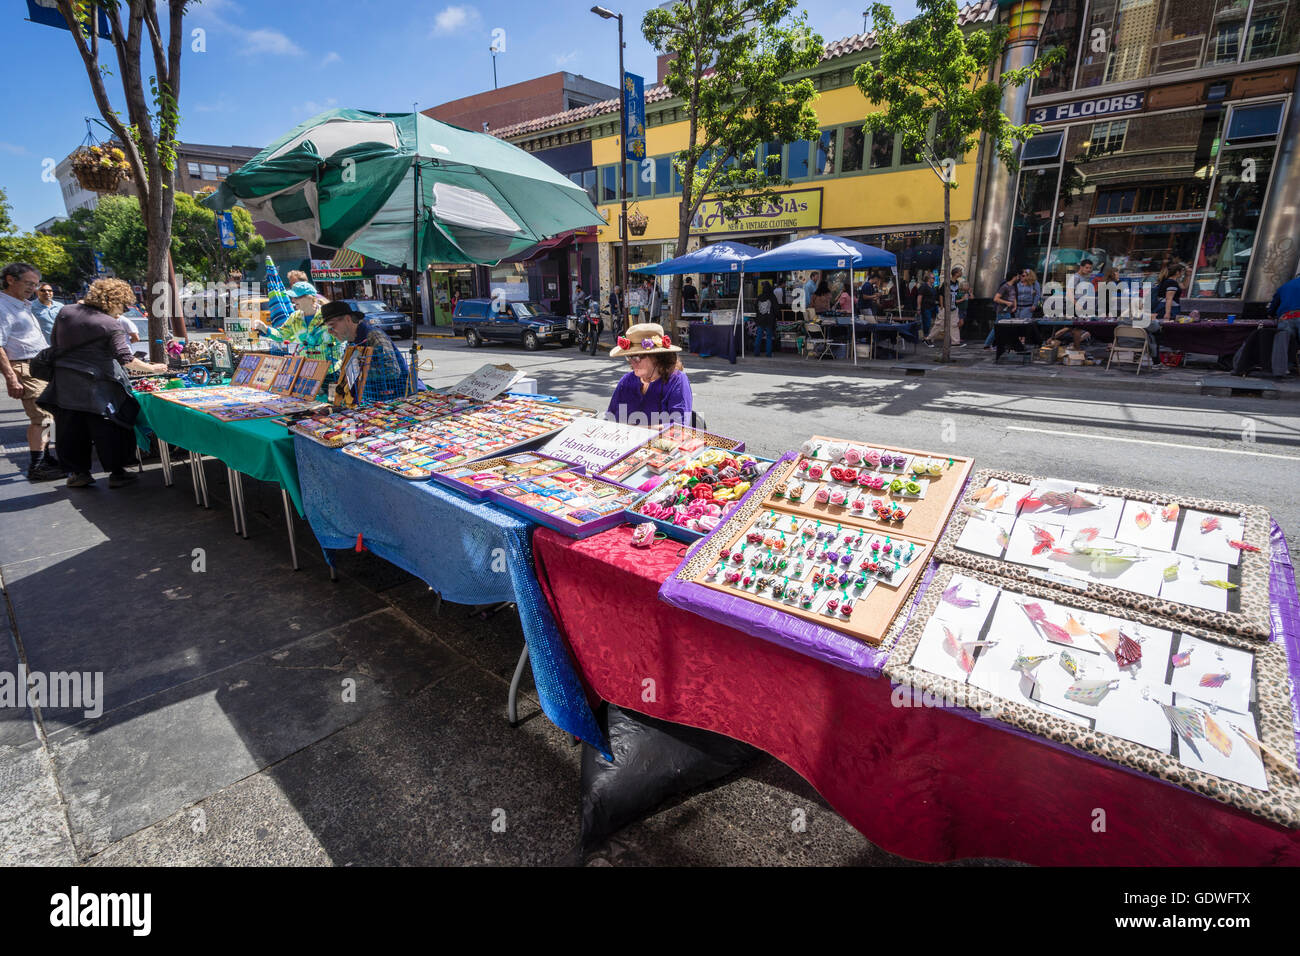 Street vendors selling handmade crafts on tables along Telegraph Hill on University of California at Berkeley college - Stock Image